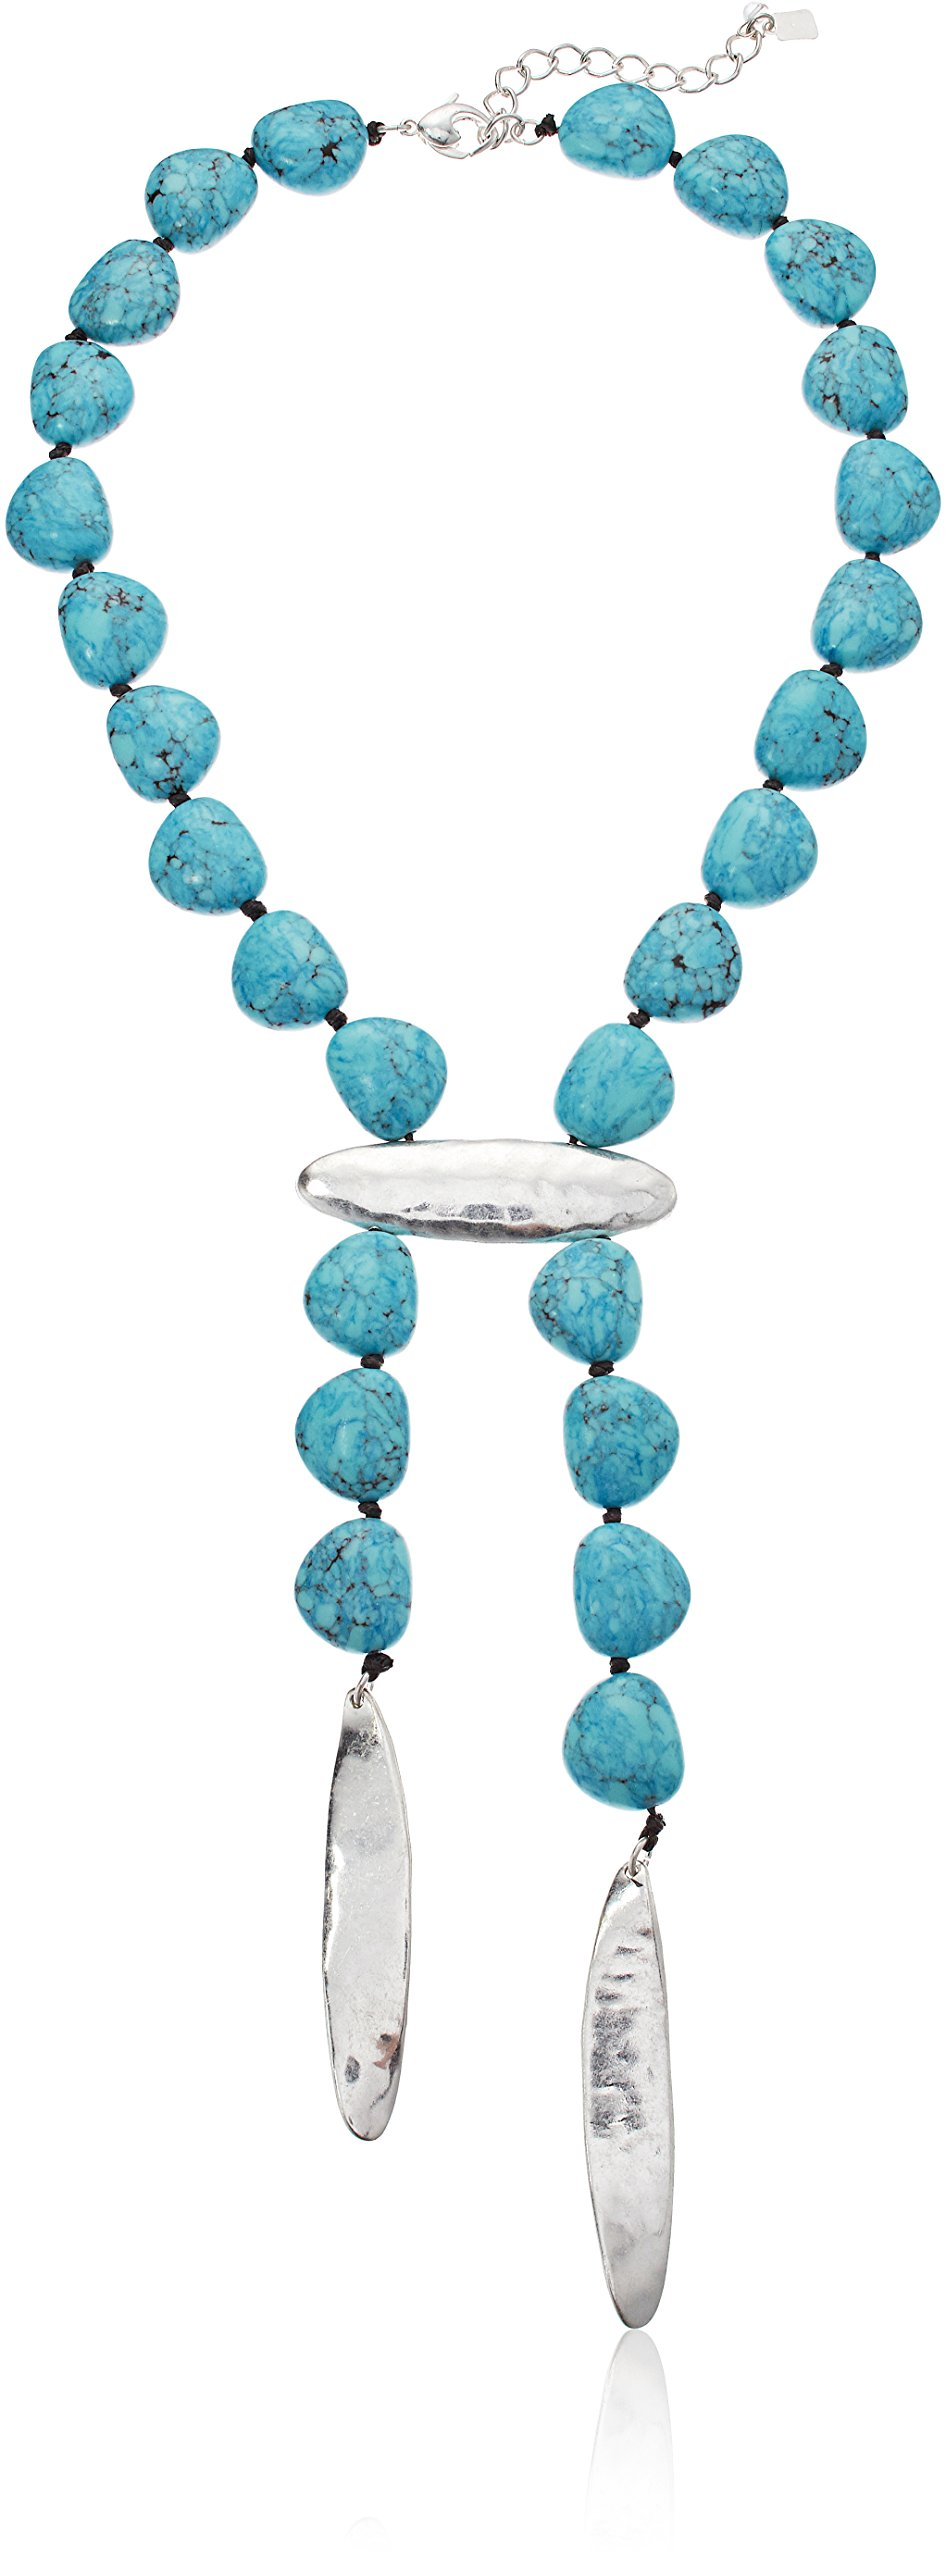 Robert Lee Morris Women's Long Y Shaped Necklace, Turquoise, One Size